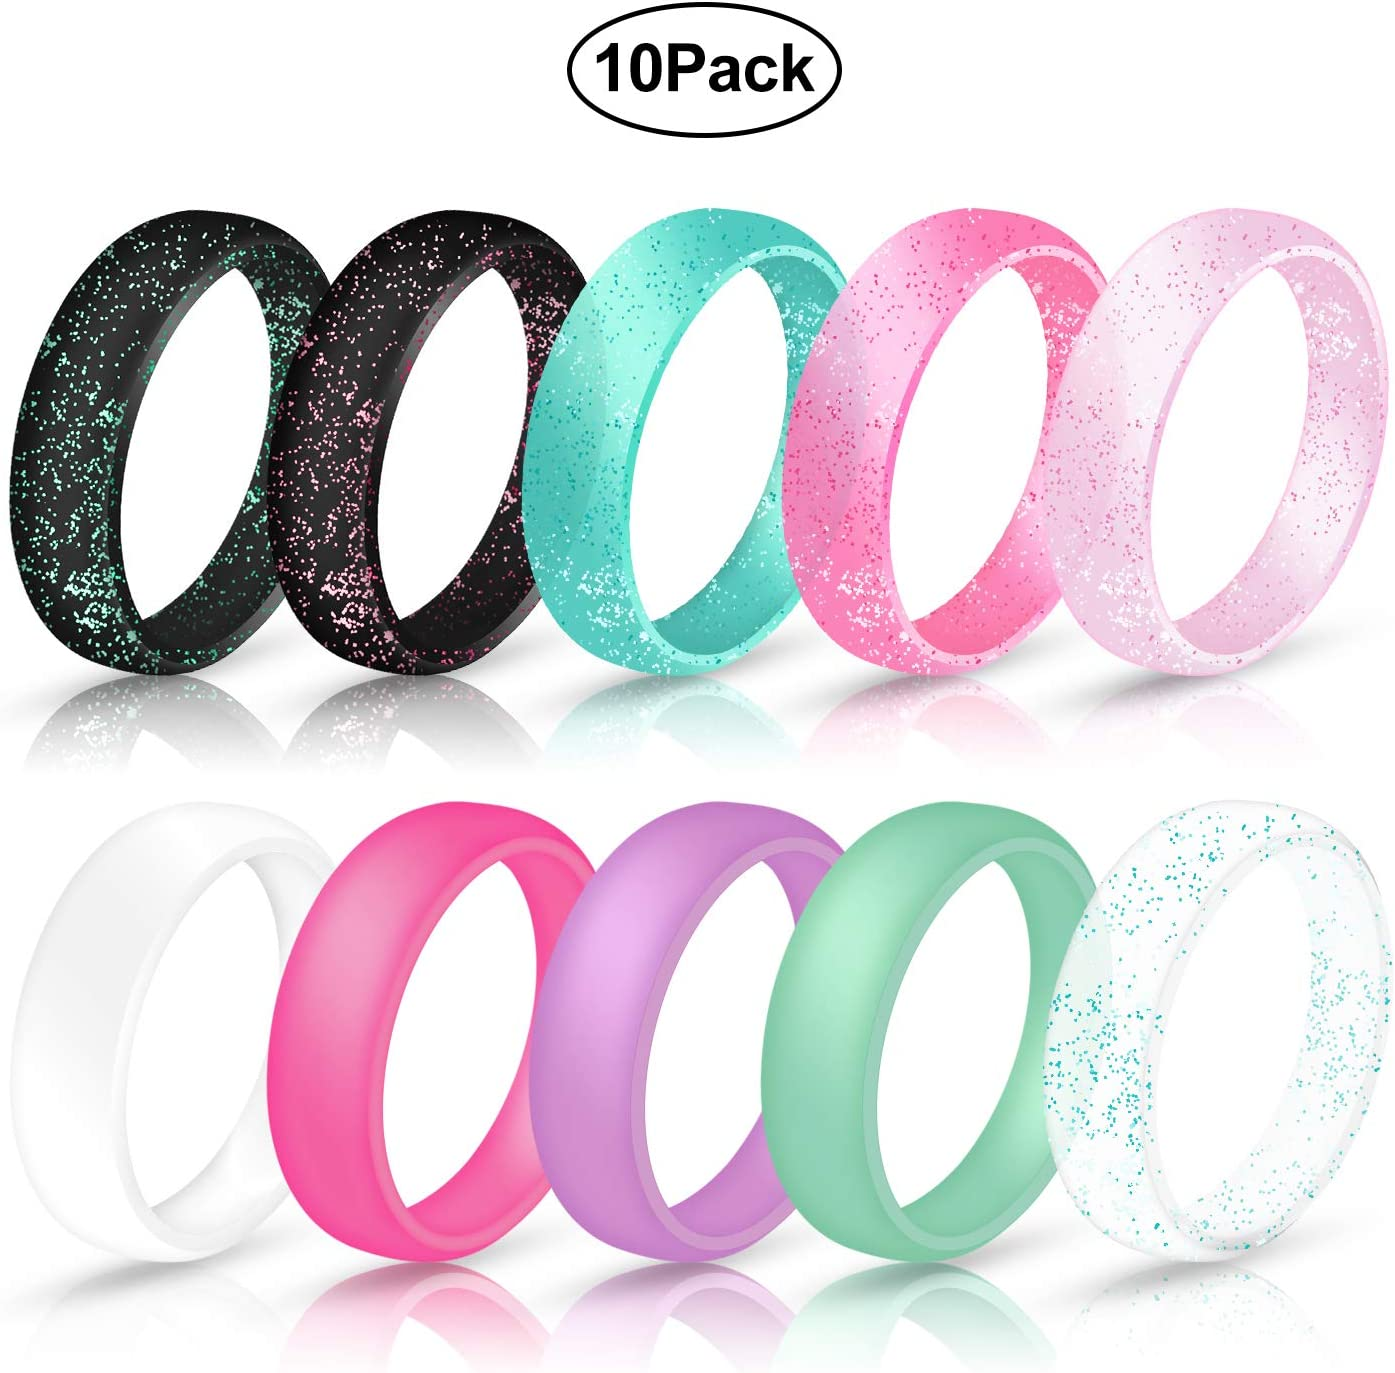 5.7mm Wide Size 4 5 6 7 8 9 10-10 Pack Ninge Width Silicone Wedding Rings for Women,Glitter Blingbling Design,Rubber Wedding Engagement Bands Stackable Rings